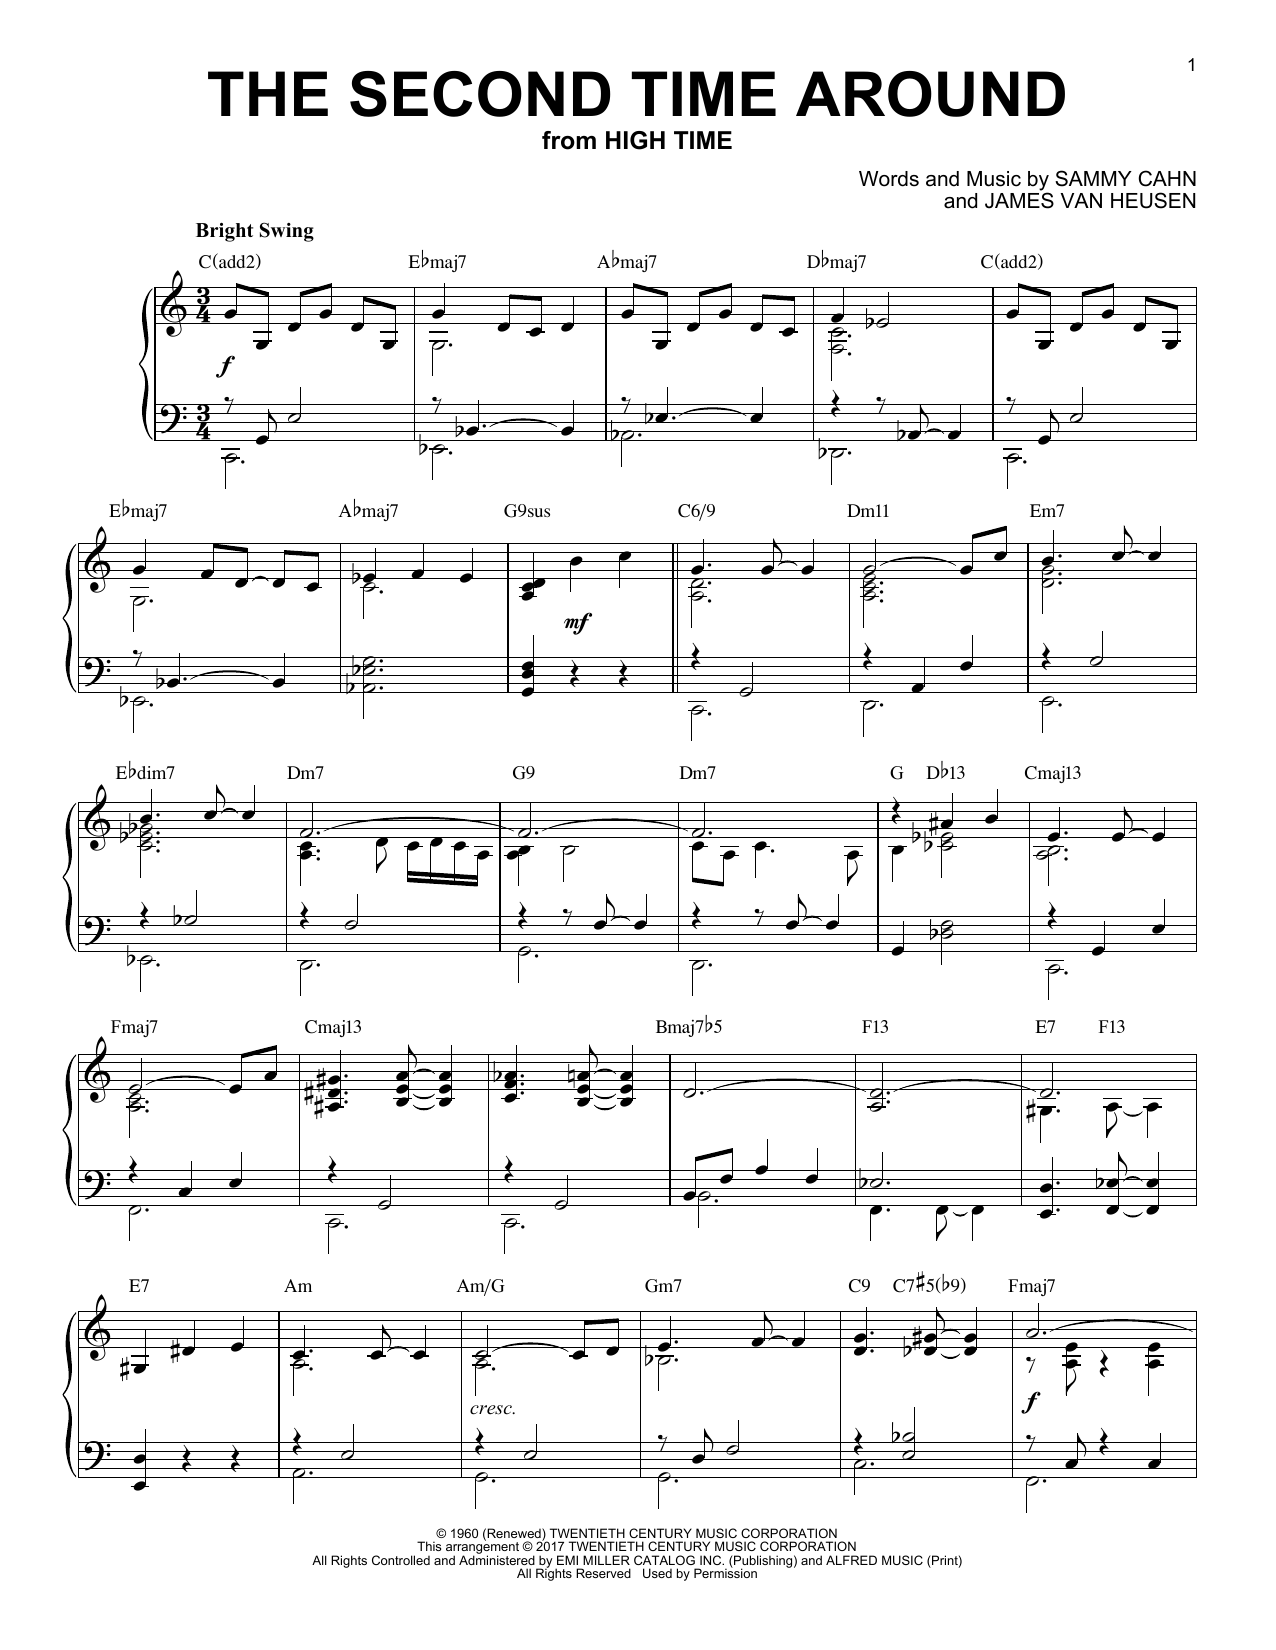 James Van Heusen The Second Time Around [Jazz version] sheet music notes and chords. Download Printable PDF.